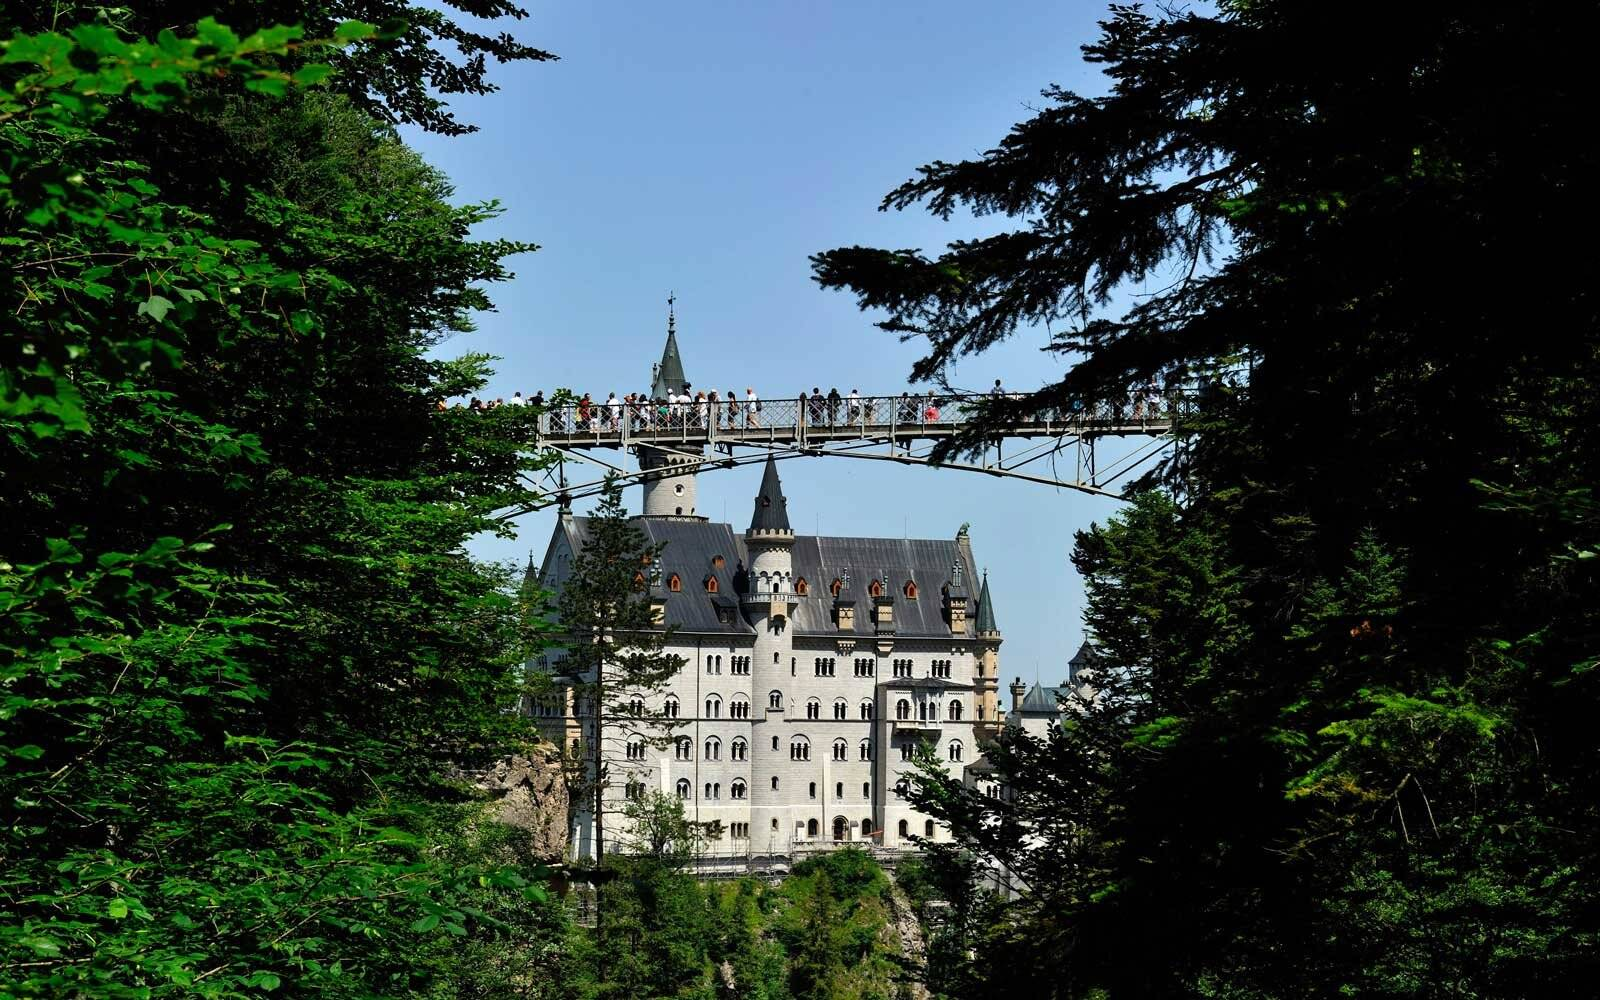 Neuschwanstein Castle Bridge